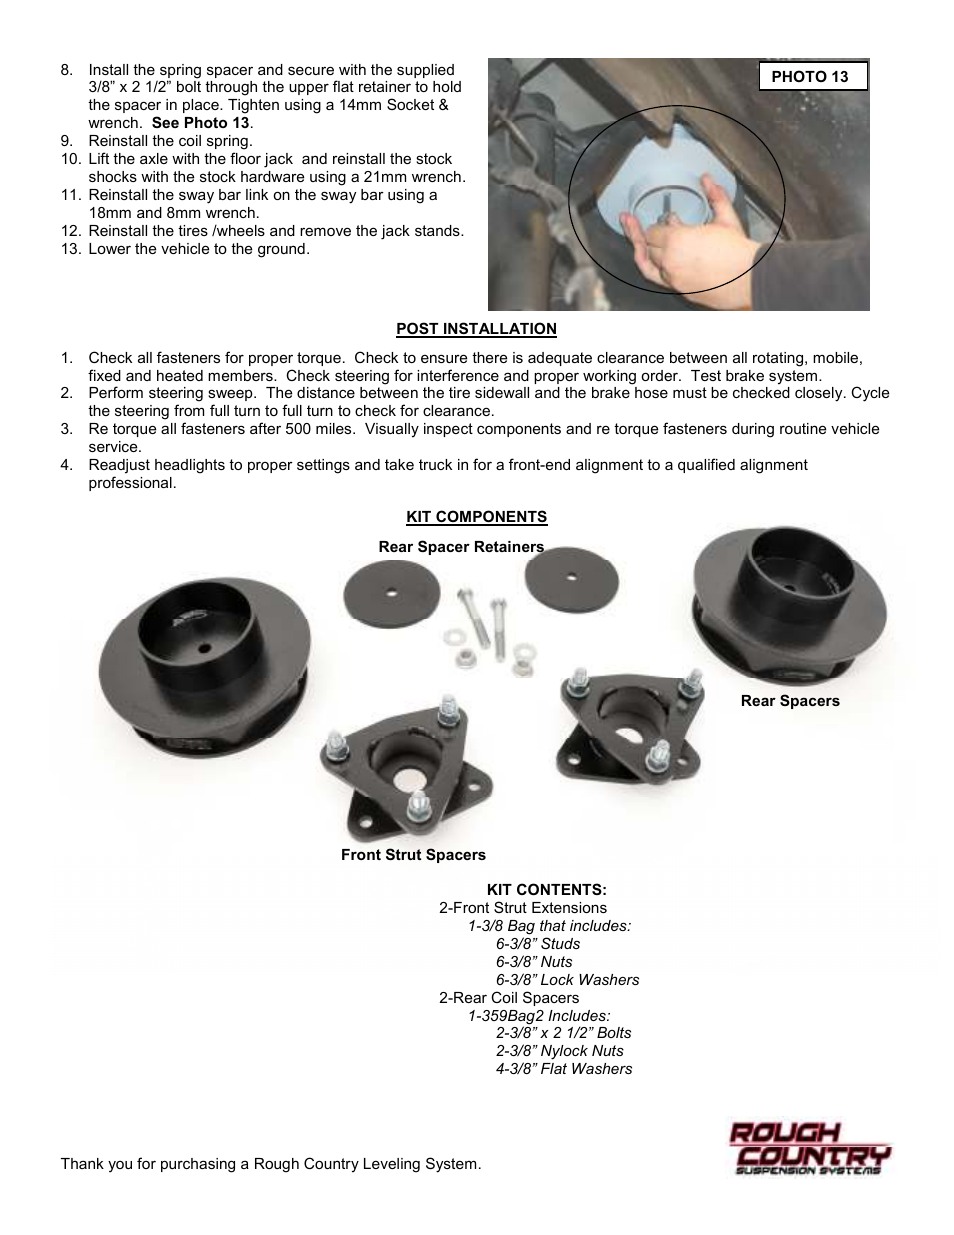 Rough Country 359 User Manual   Page 4 / 4